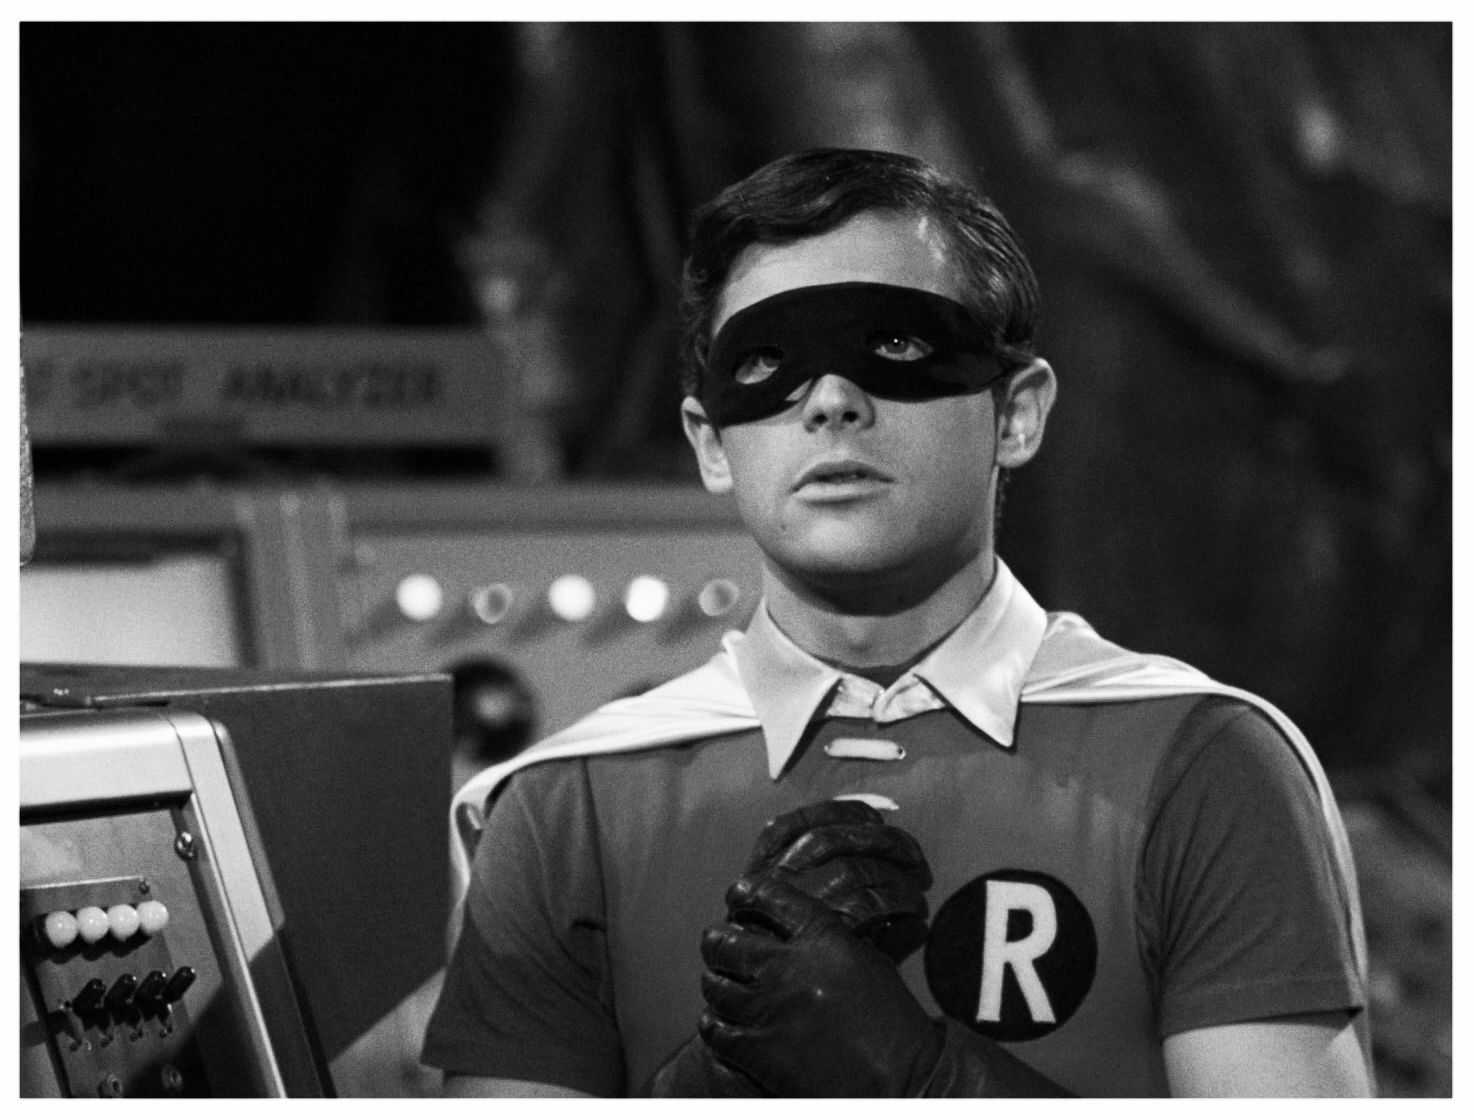 Burt Ward as Robin, the Boy Wonder. Batman tv series